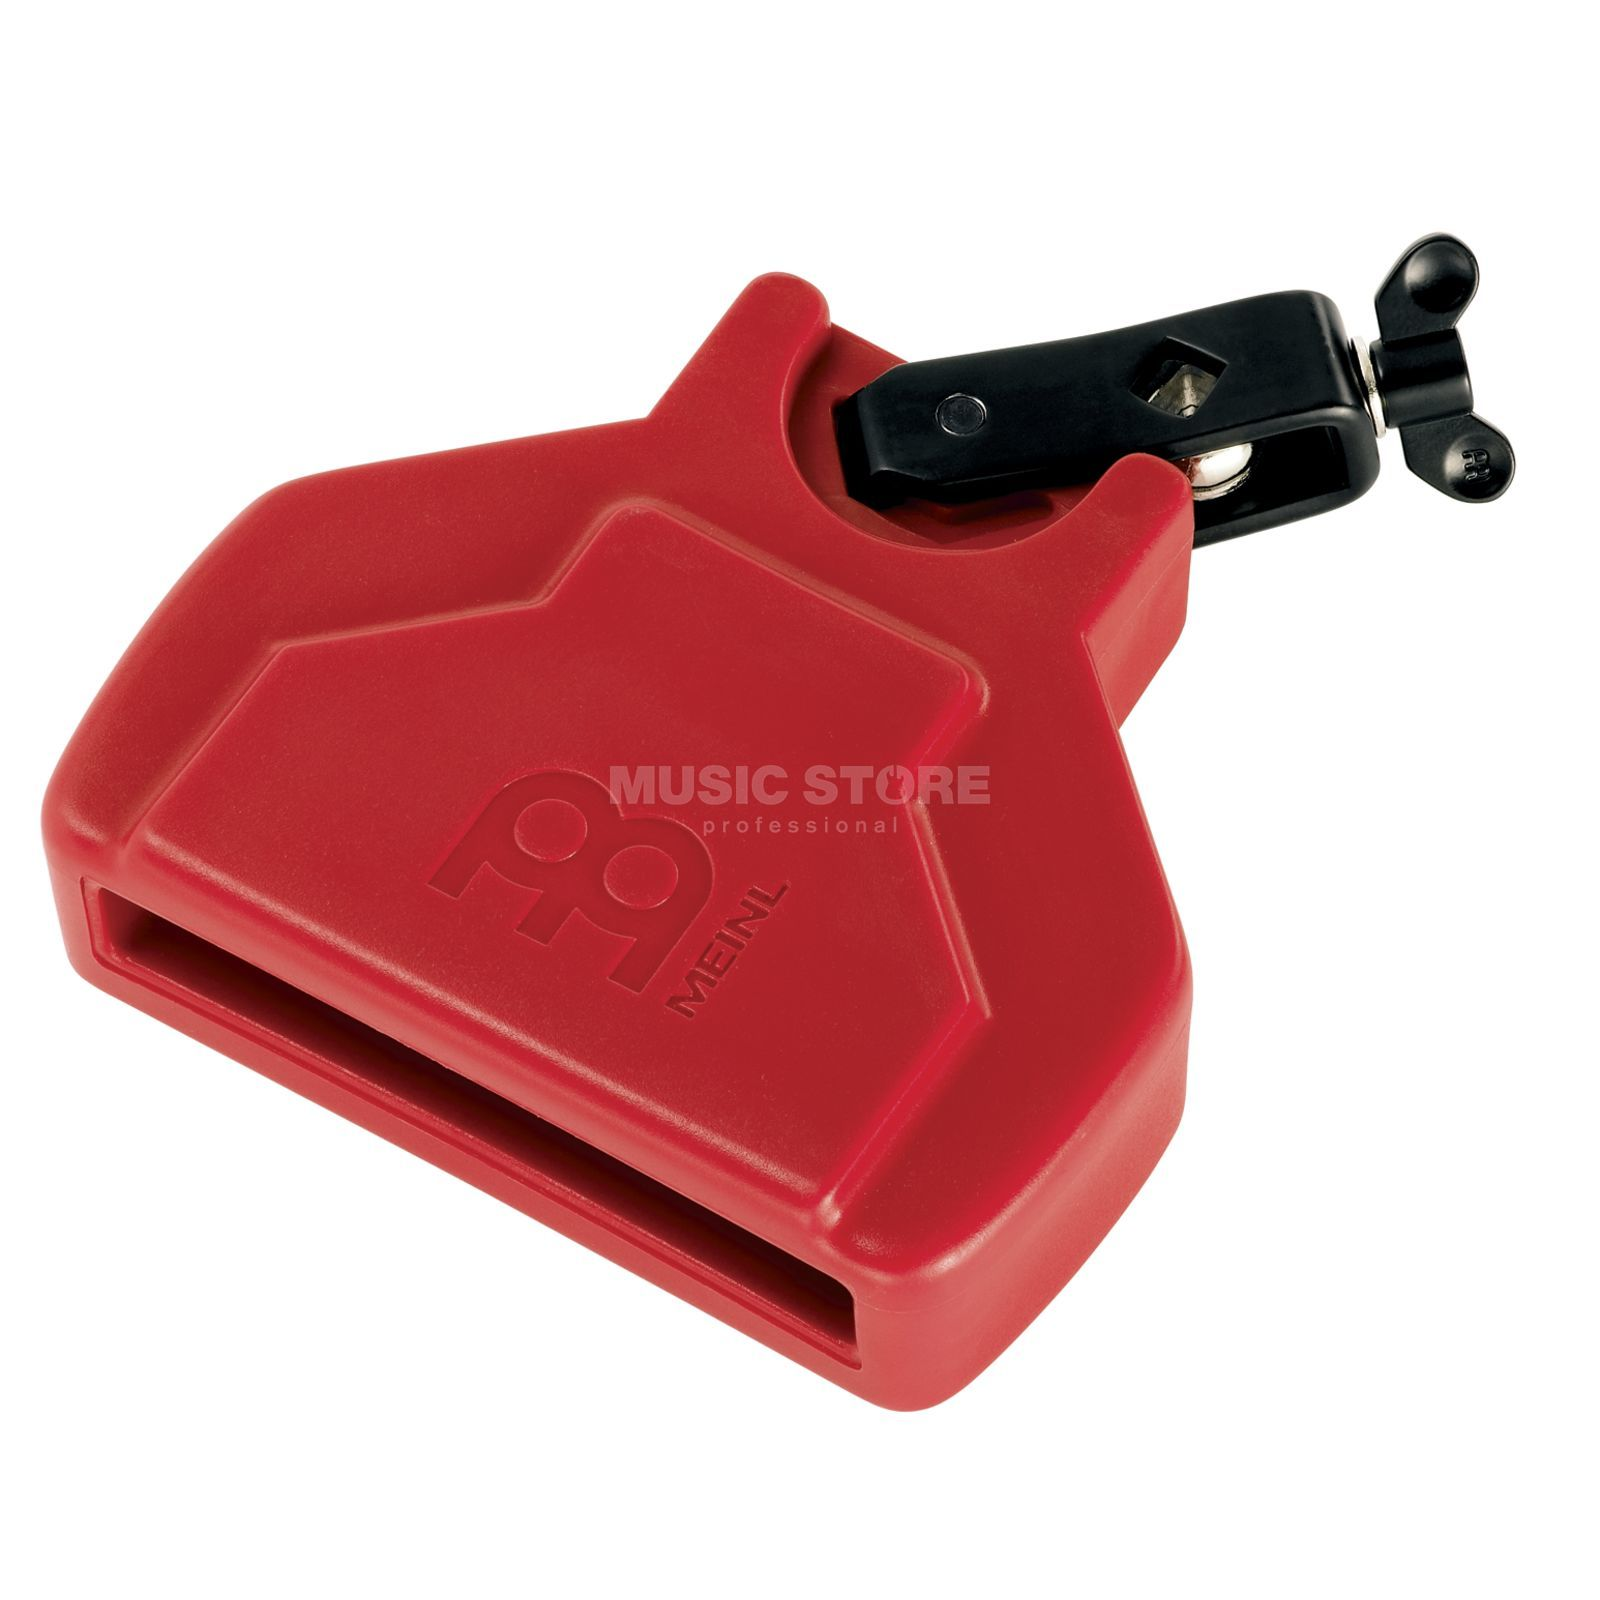 Meinl Percussion Block MPE2R, Low Pitch, Red Produktbillede